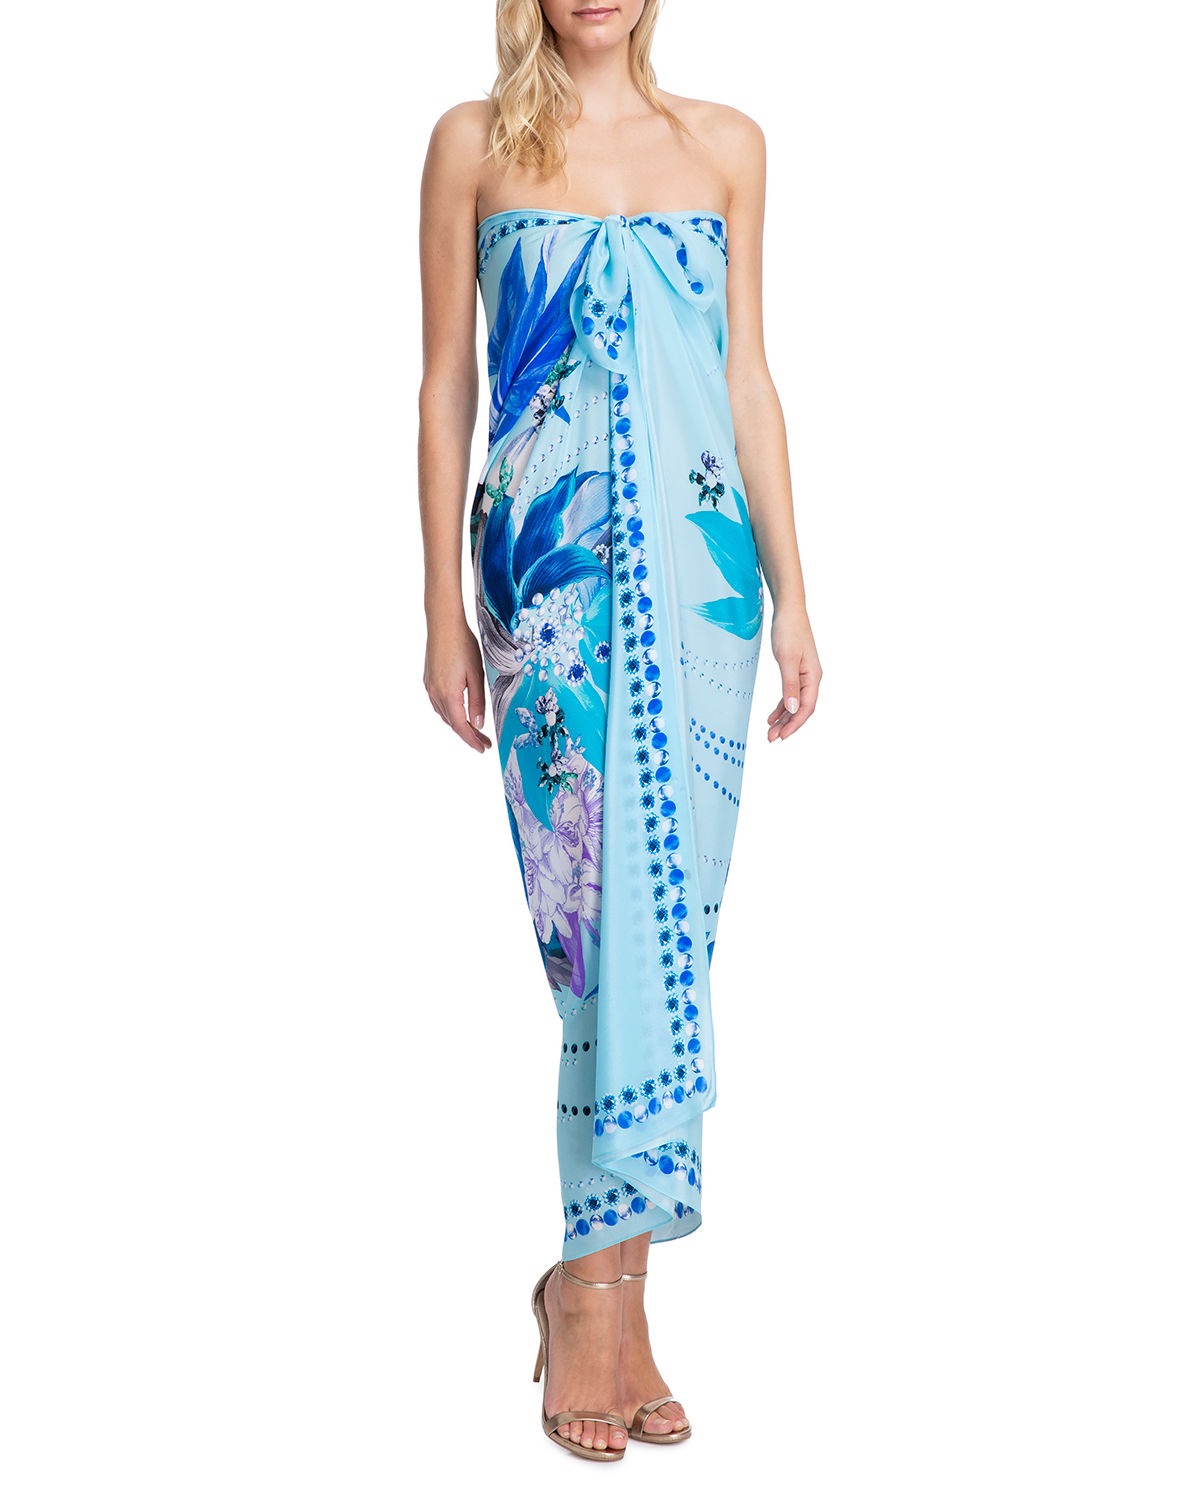 Gottex Tops PARADISE PRINTED PAREO COVERUP